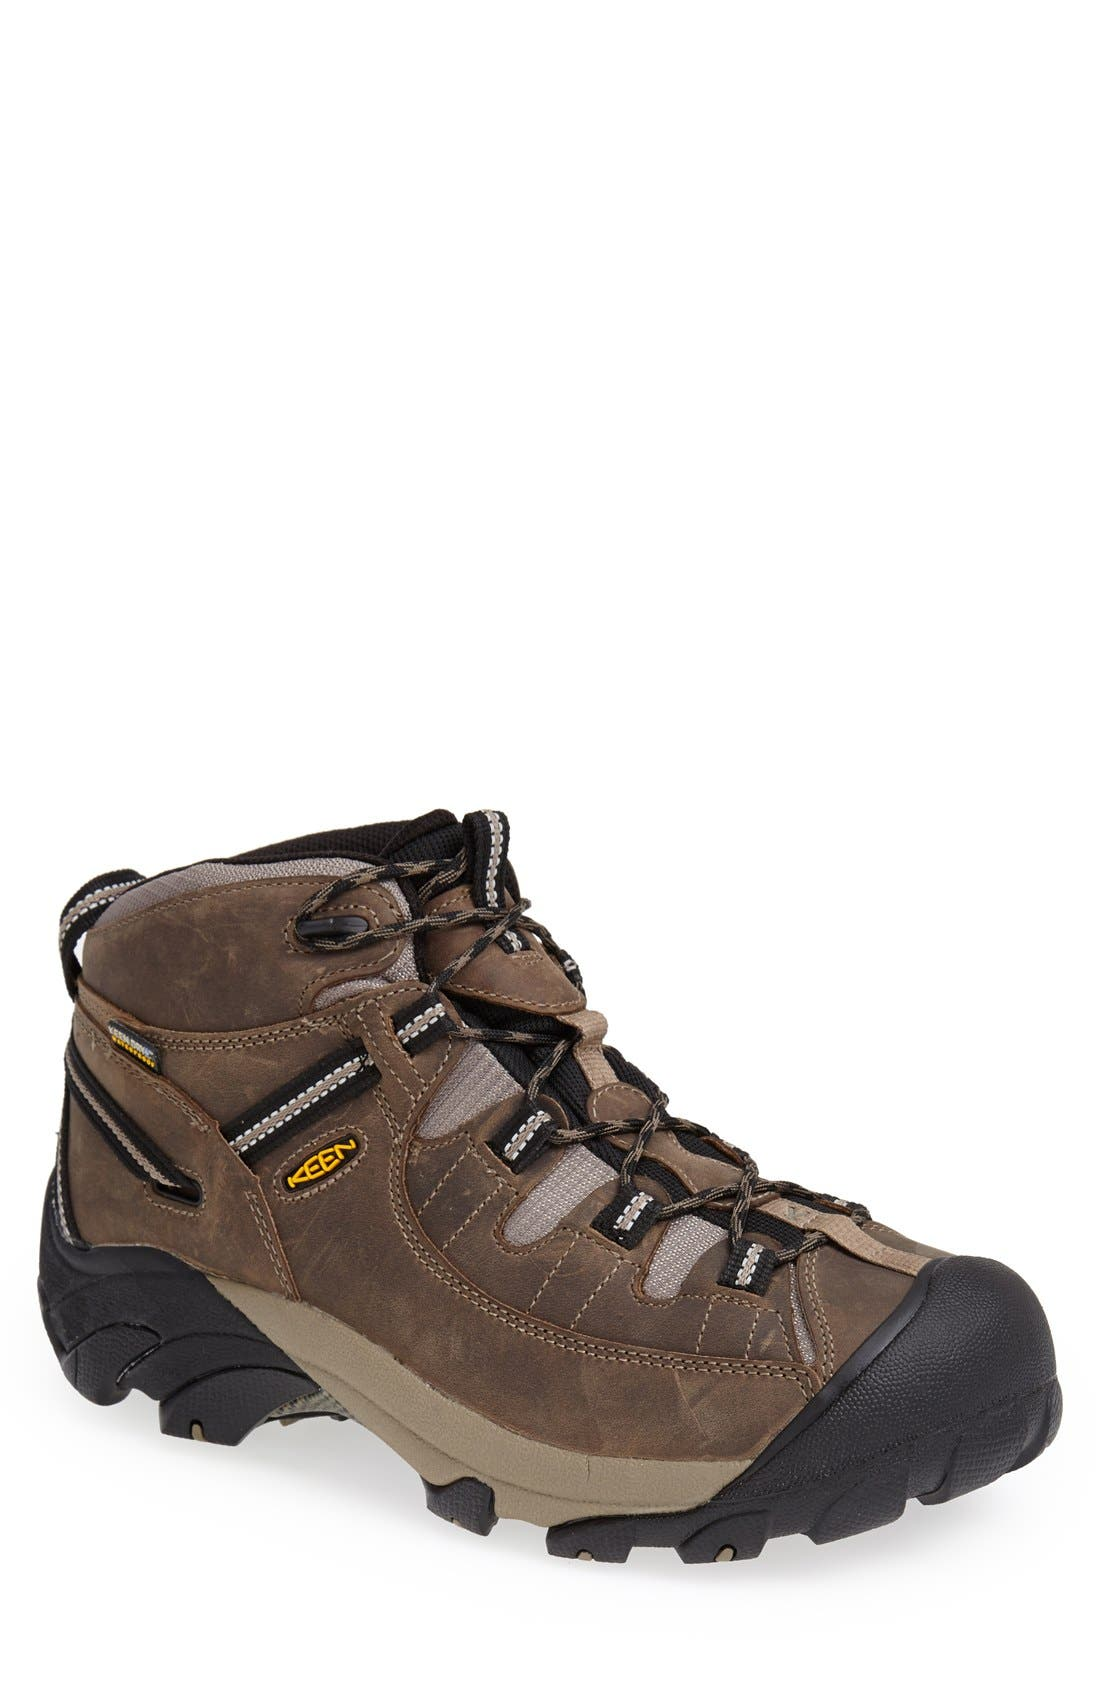 Alternate Image 1 Selected - Keen 'Targhee II Mid' Hiking Boot (Men)